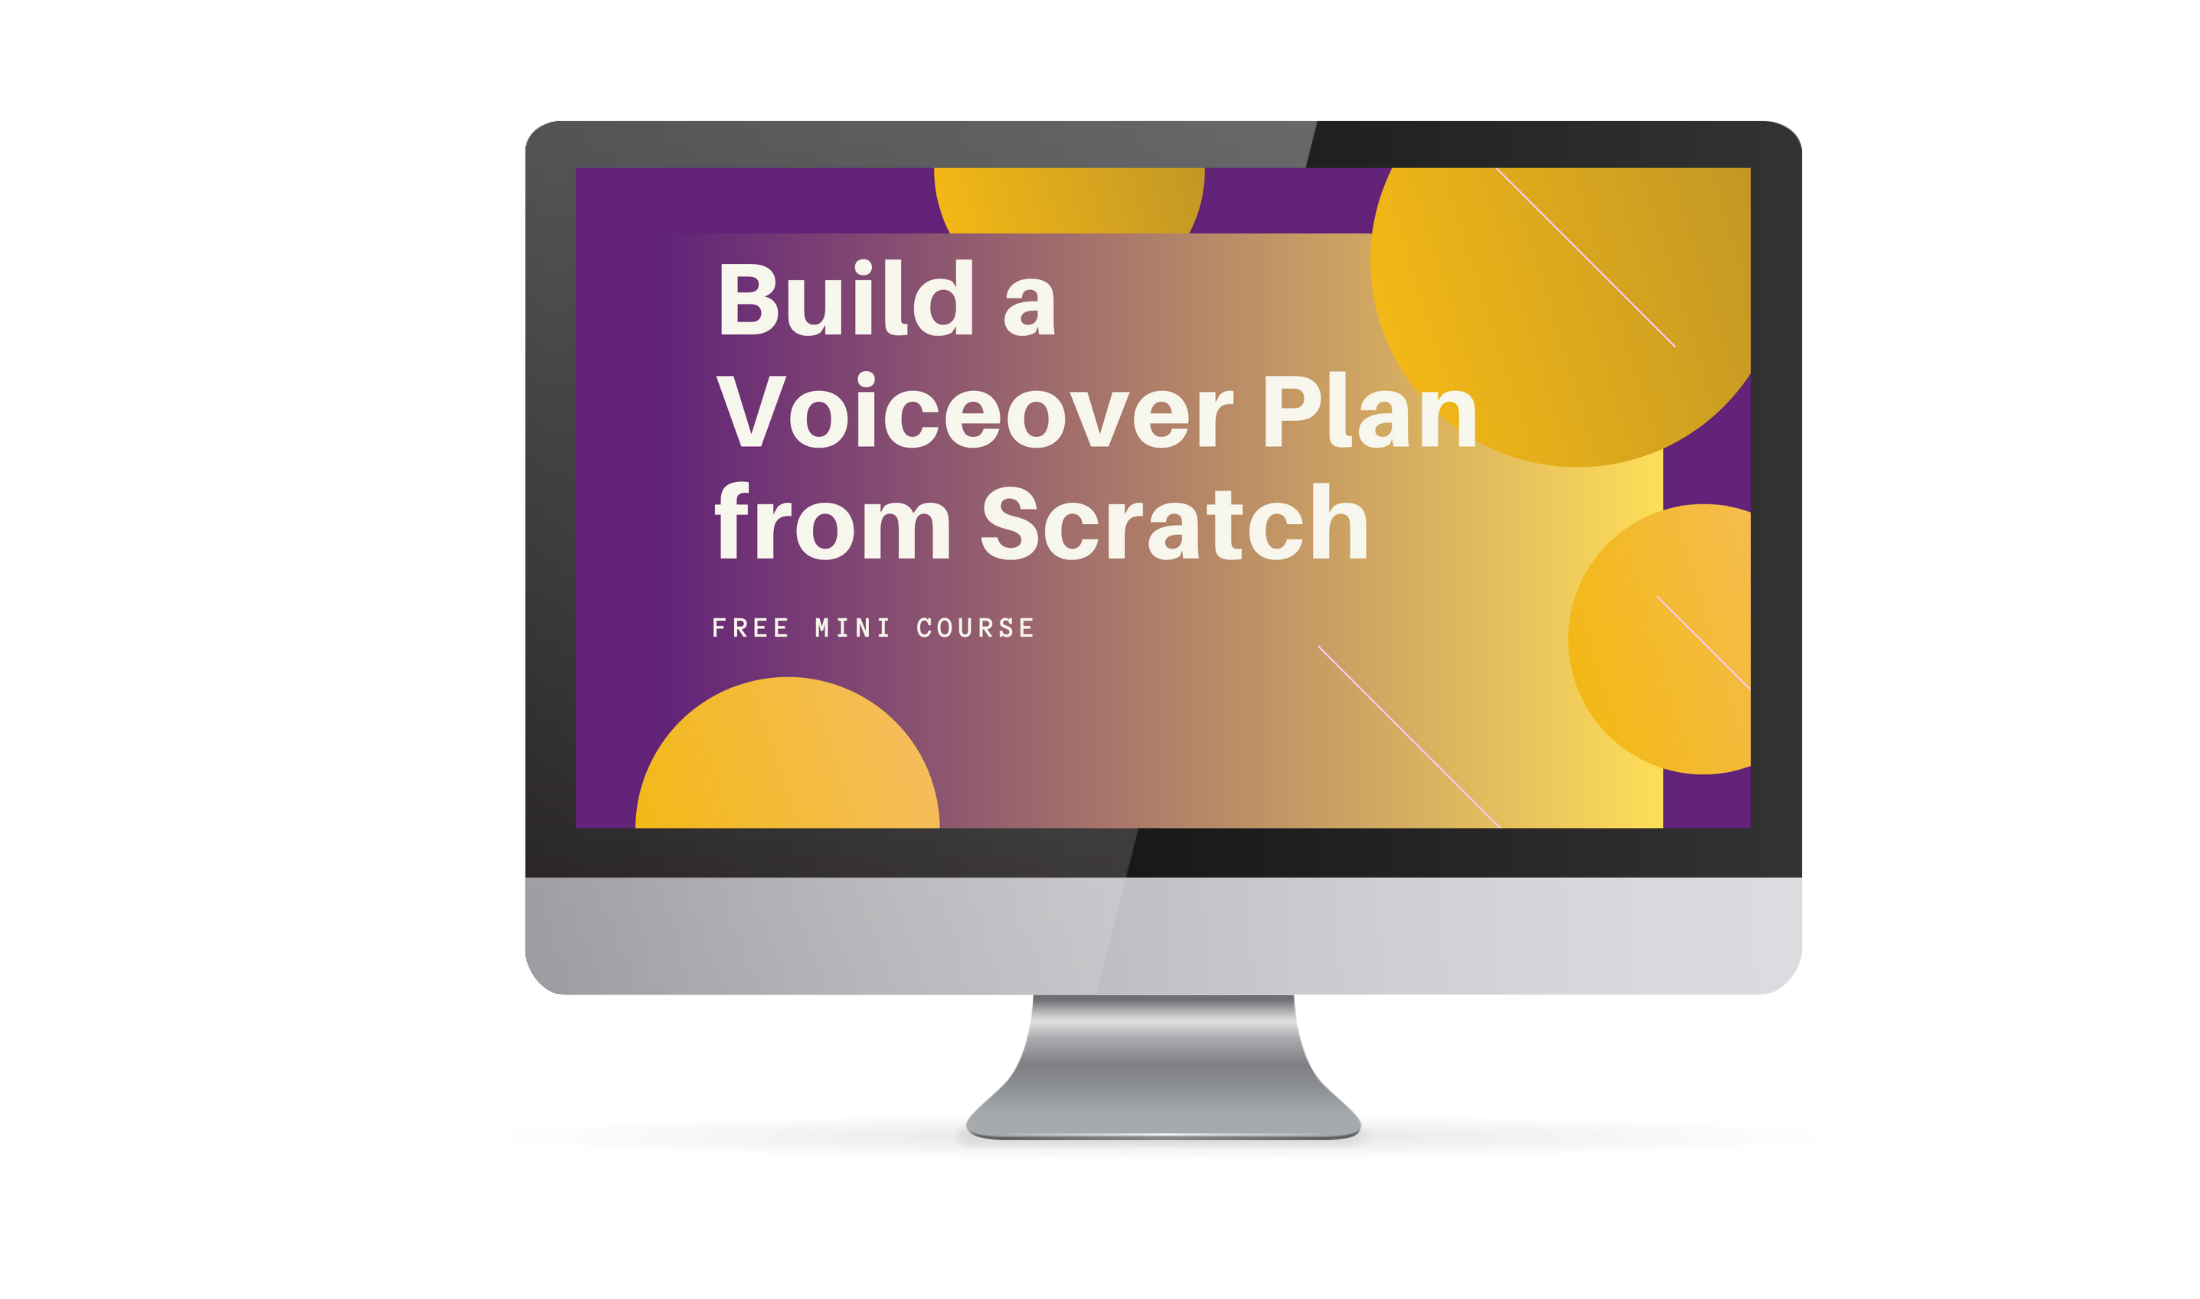 Build a Voiceover Plan from Scratch